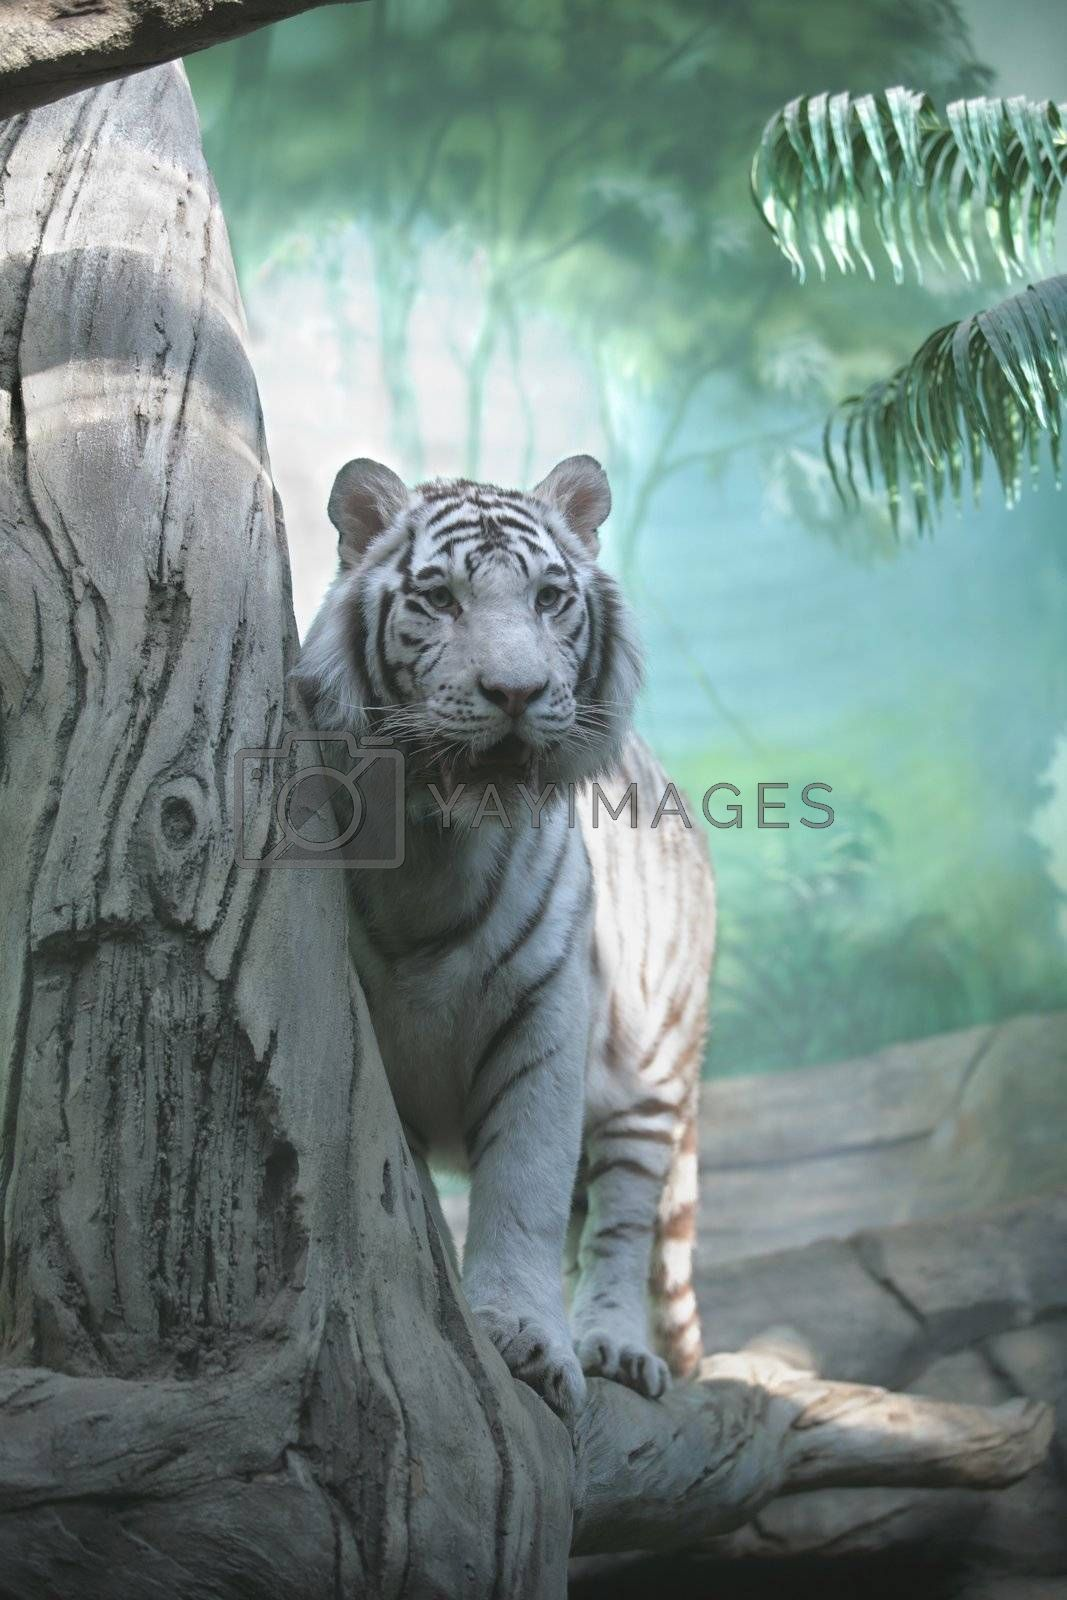 Royalty free image of White Tiger by Astroid